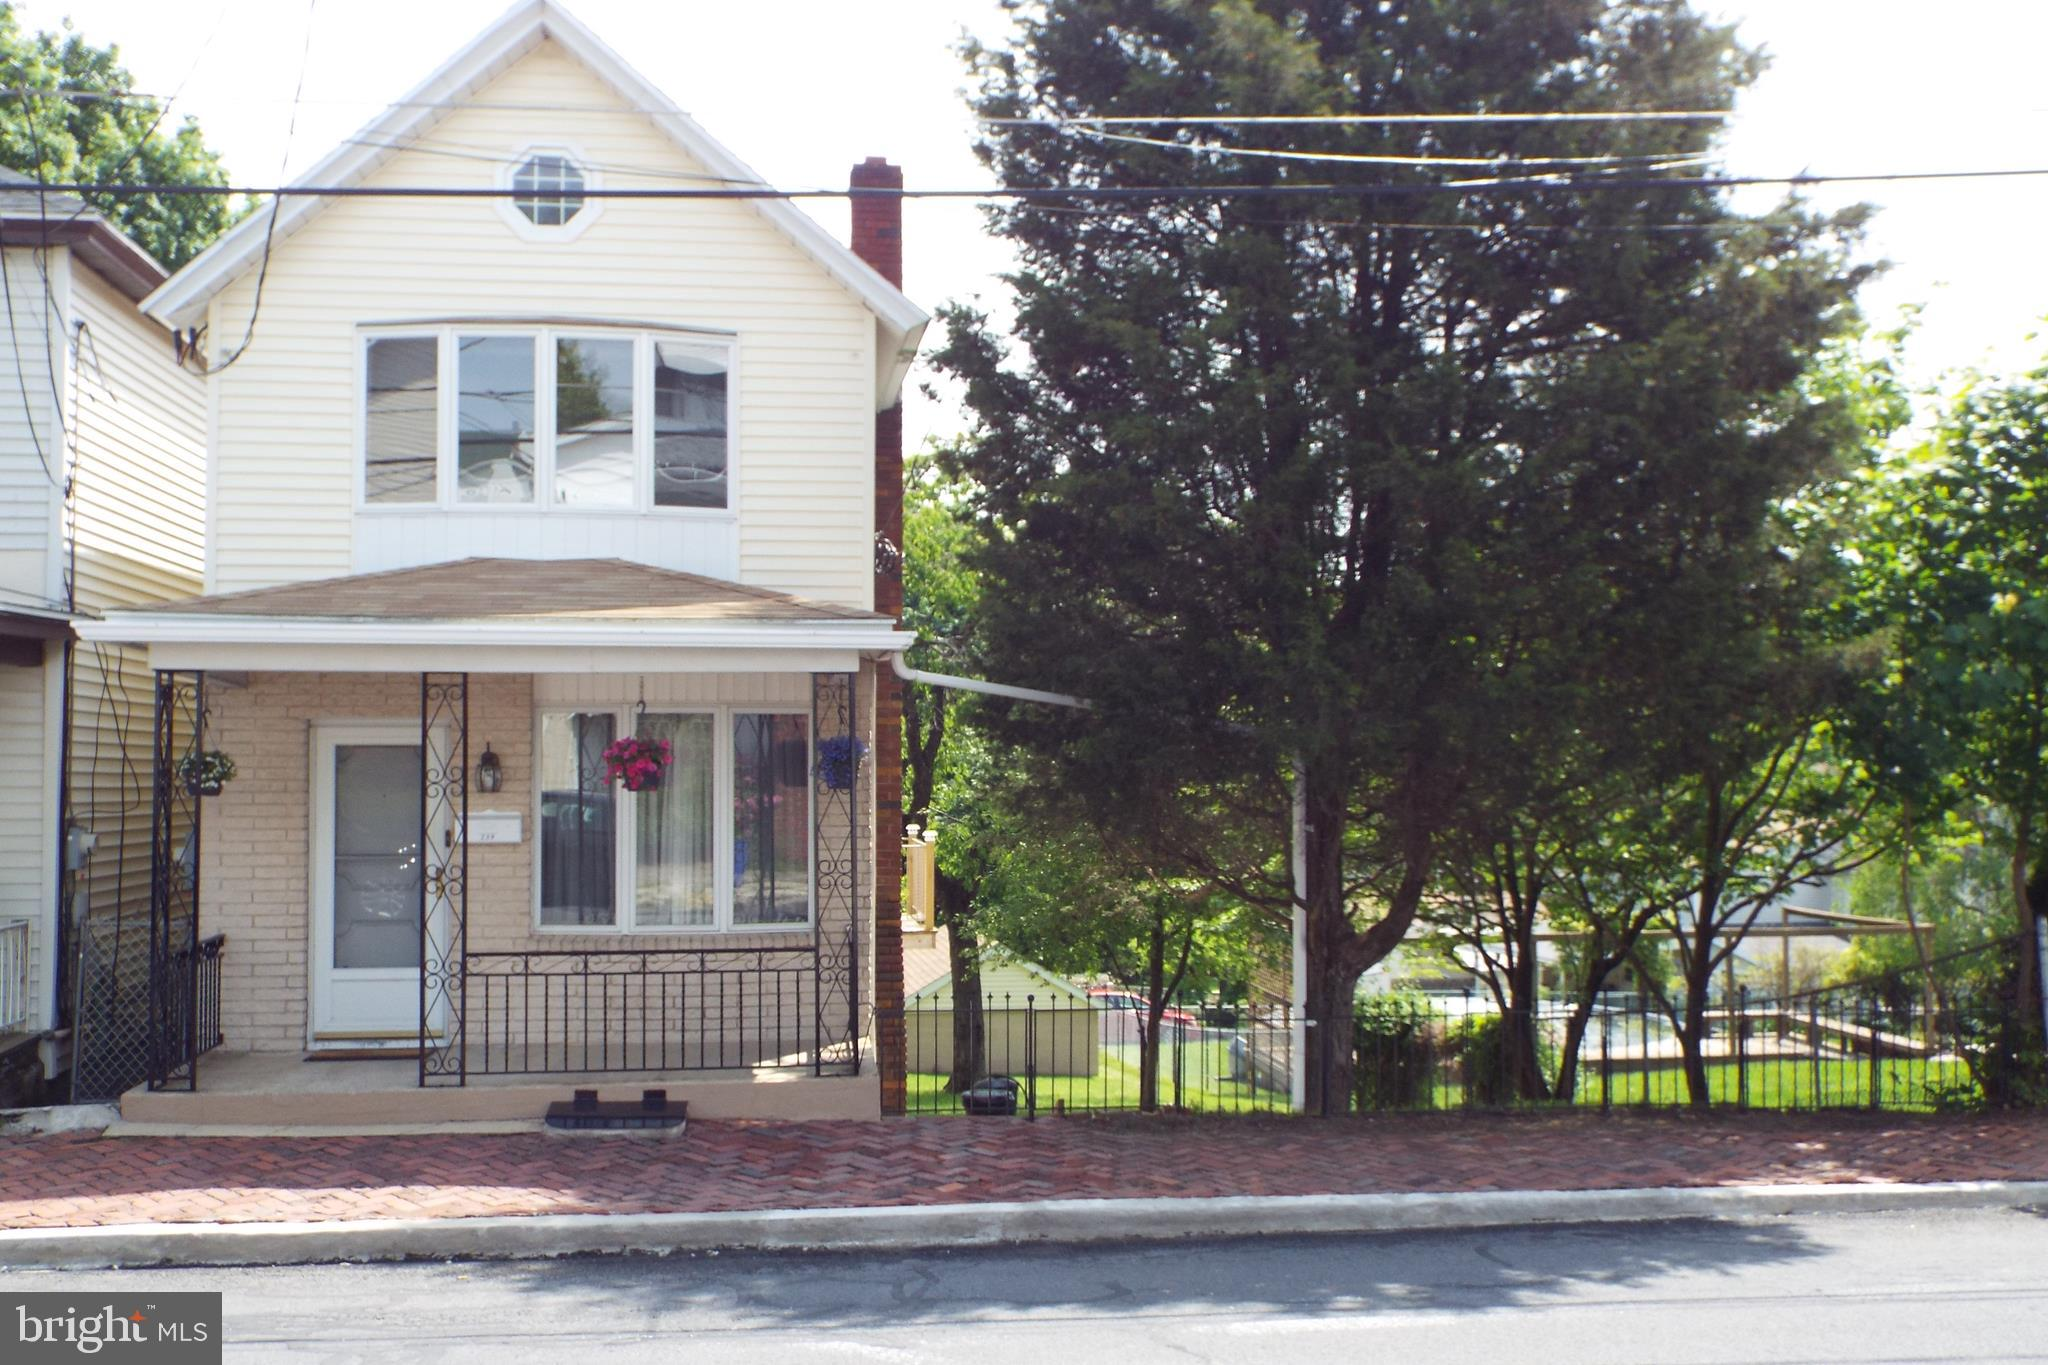 239 CHERRY STREET, SAINT CLAIR, PA 17970